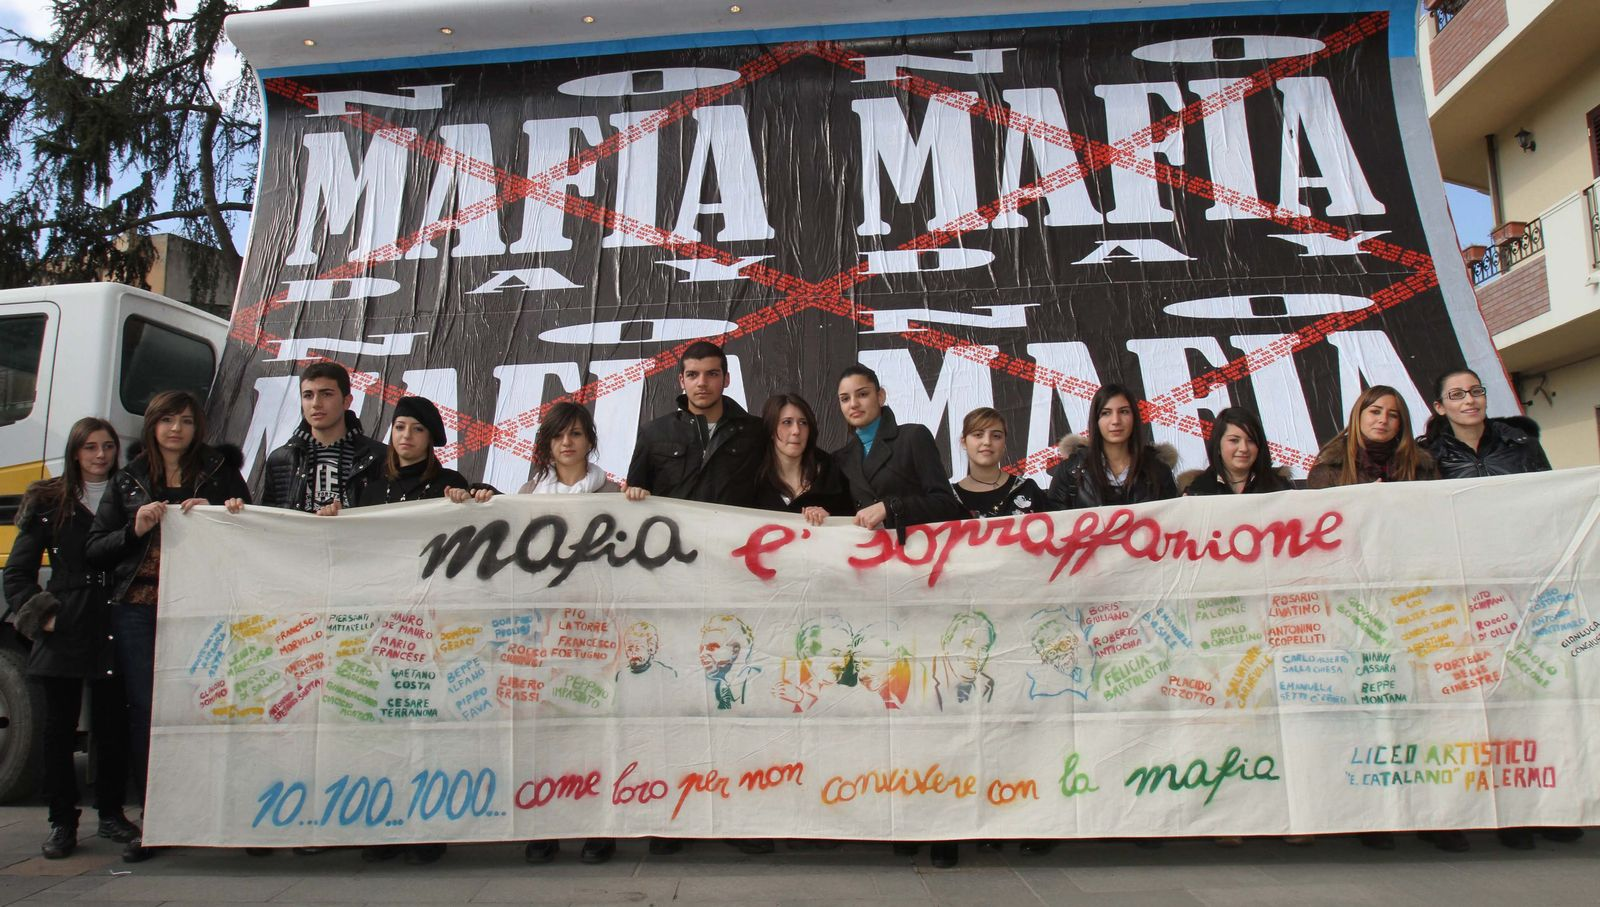 Anti-Mafia-Protest in Kalabrien